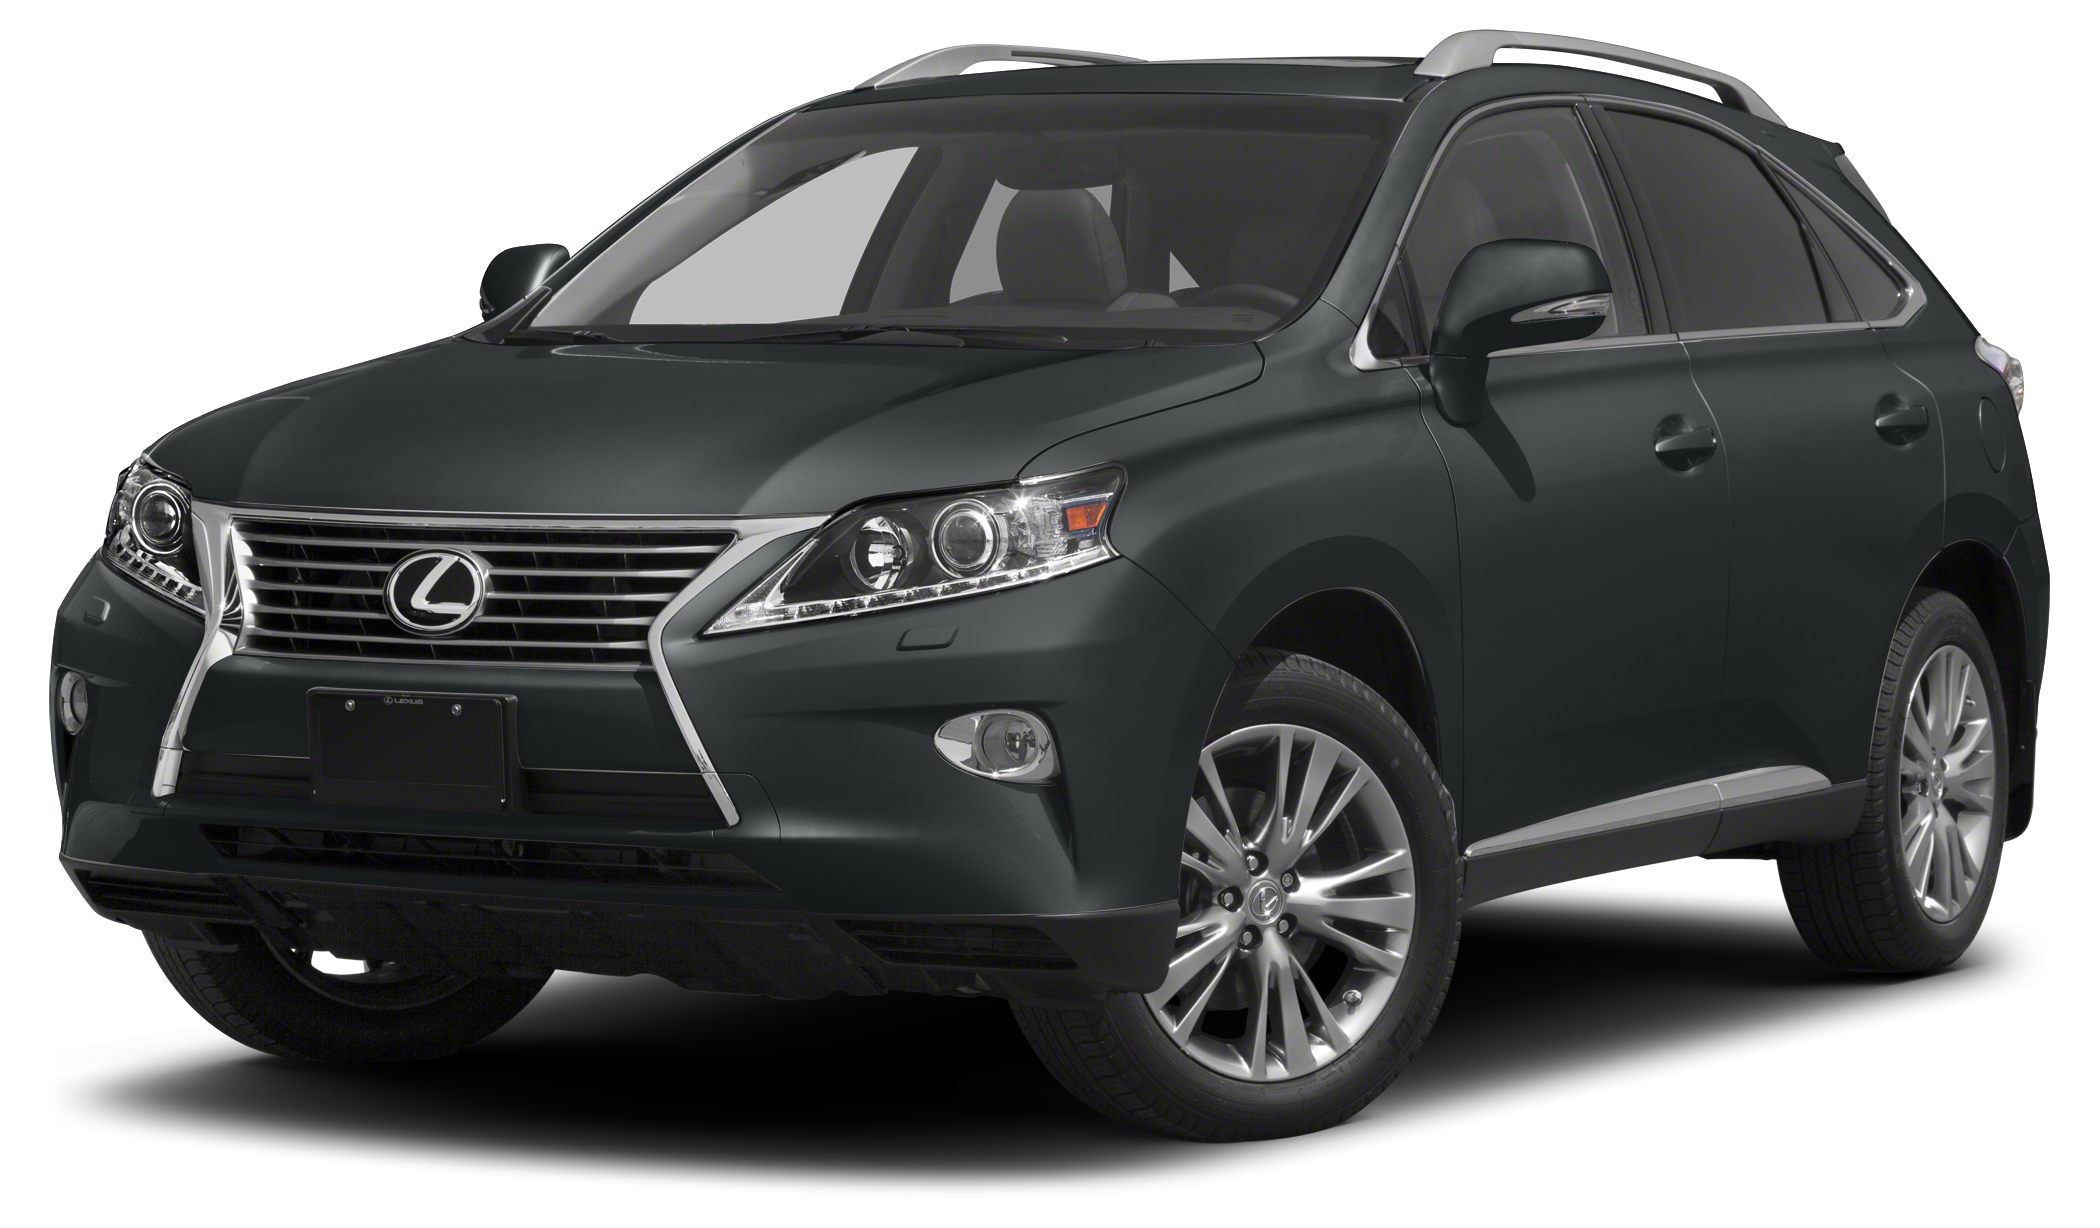 2013 Lexus RX 350 PLUS PKG PREMIUM PLUS PKG1 OWNERCARFAX CERTIFIEDAWD READY FOR ANY WEATHE